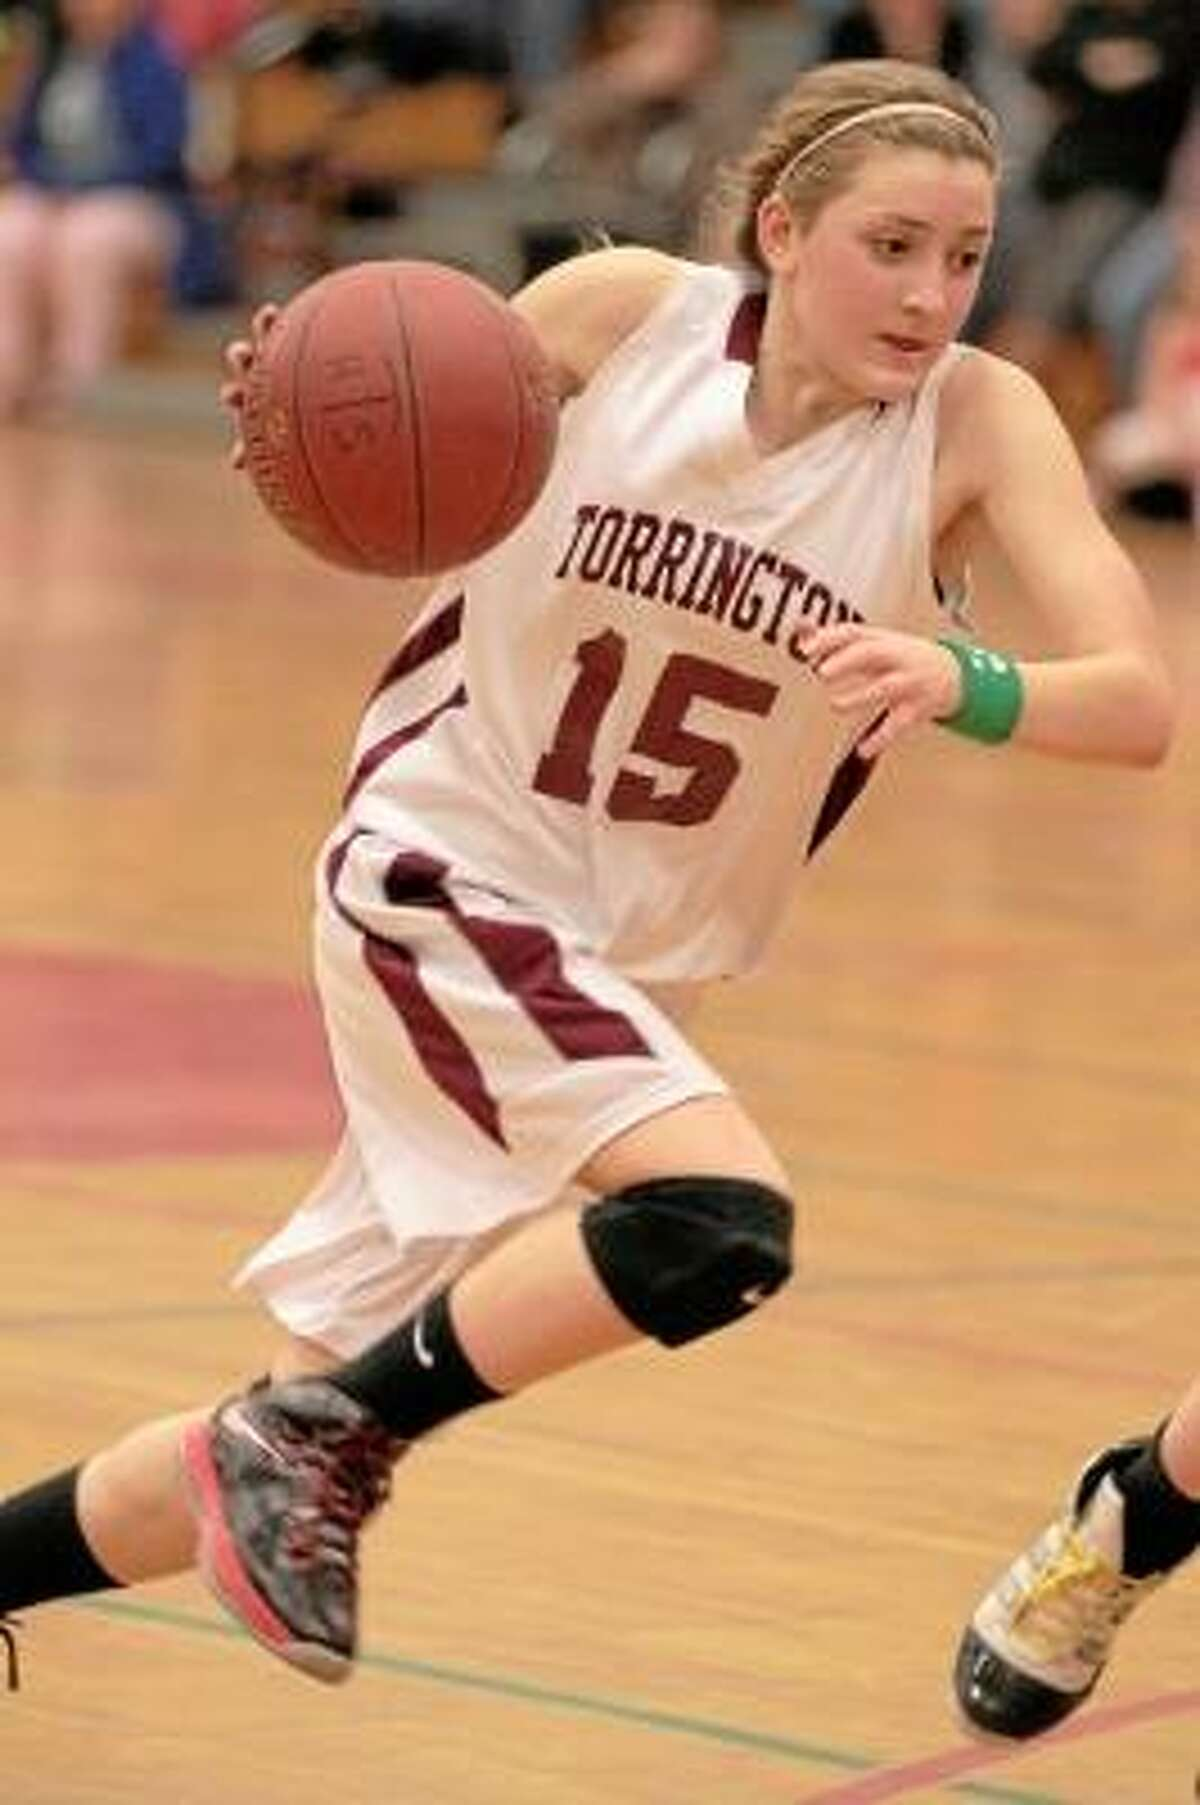 Caroline Teti takes a jump shot in Torrington's win over Watertown Friday night. Photo by Marianne Killackey/Special to Register Citizen